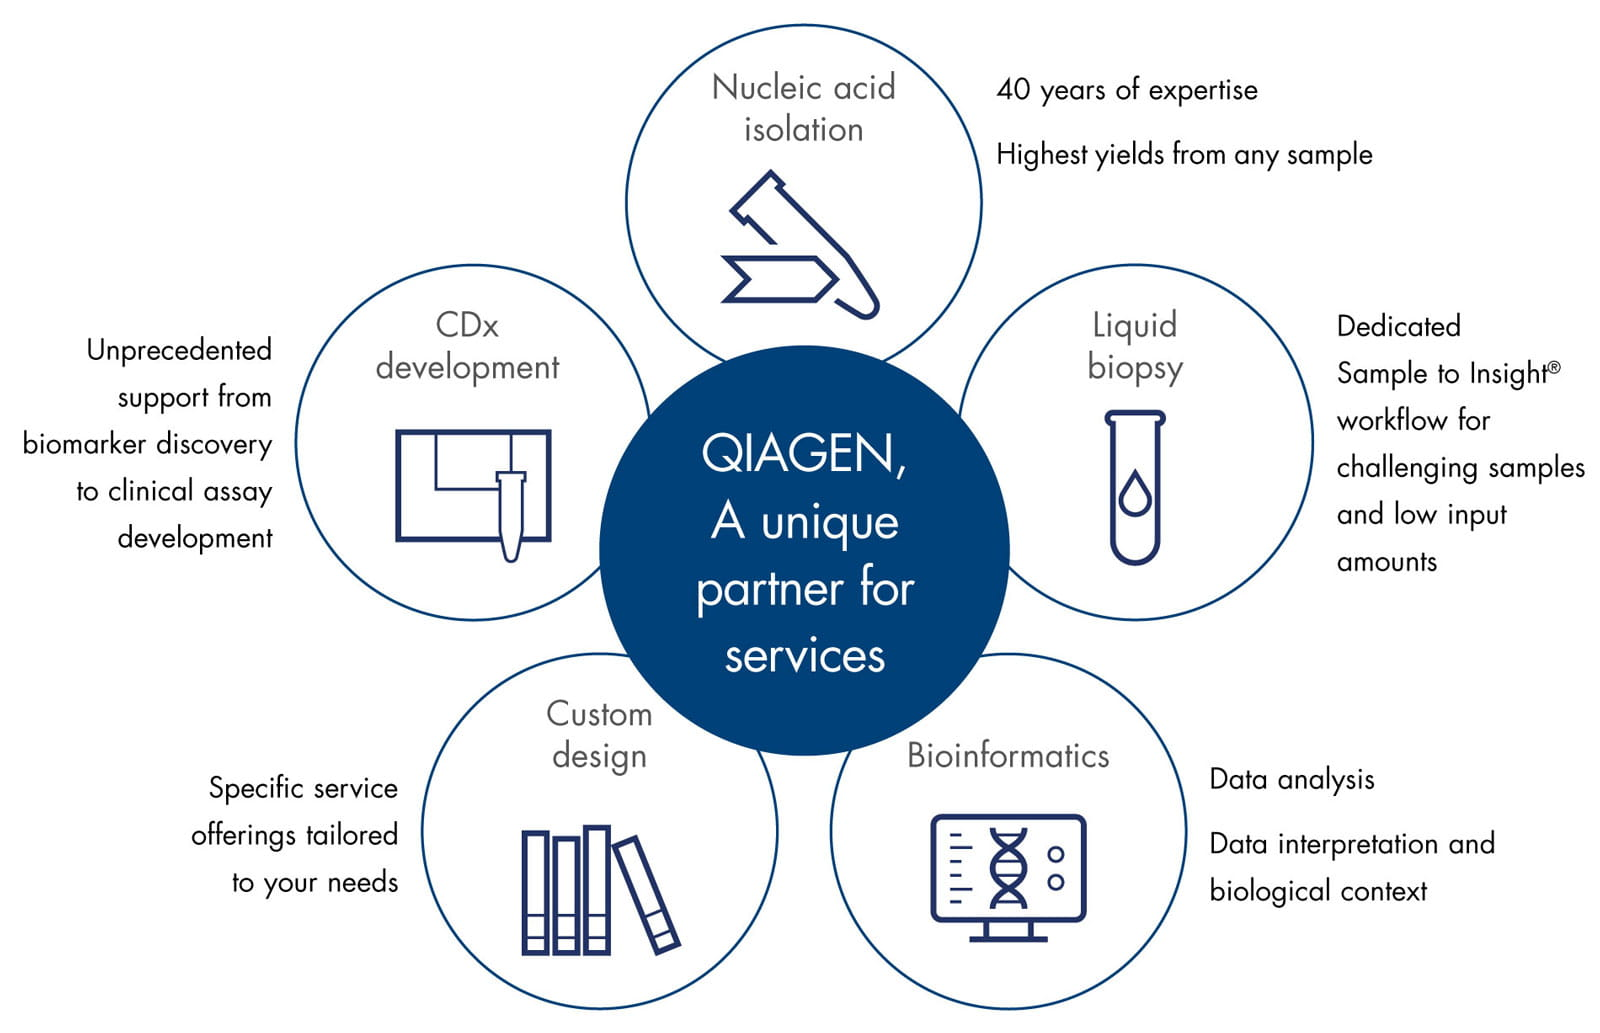 Genomic Services